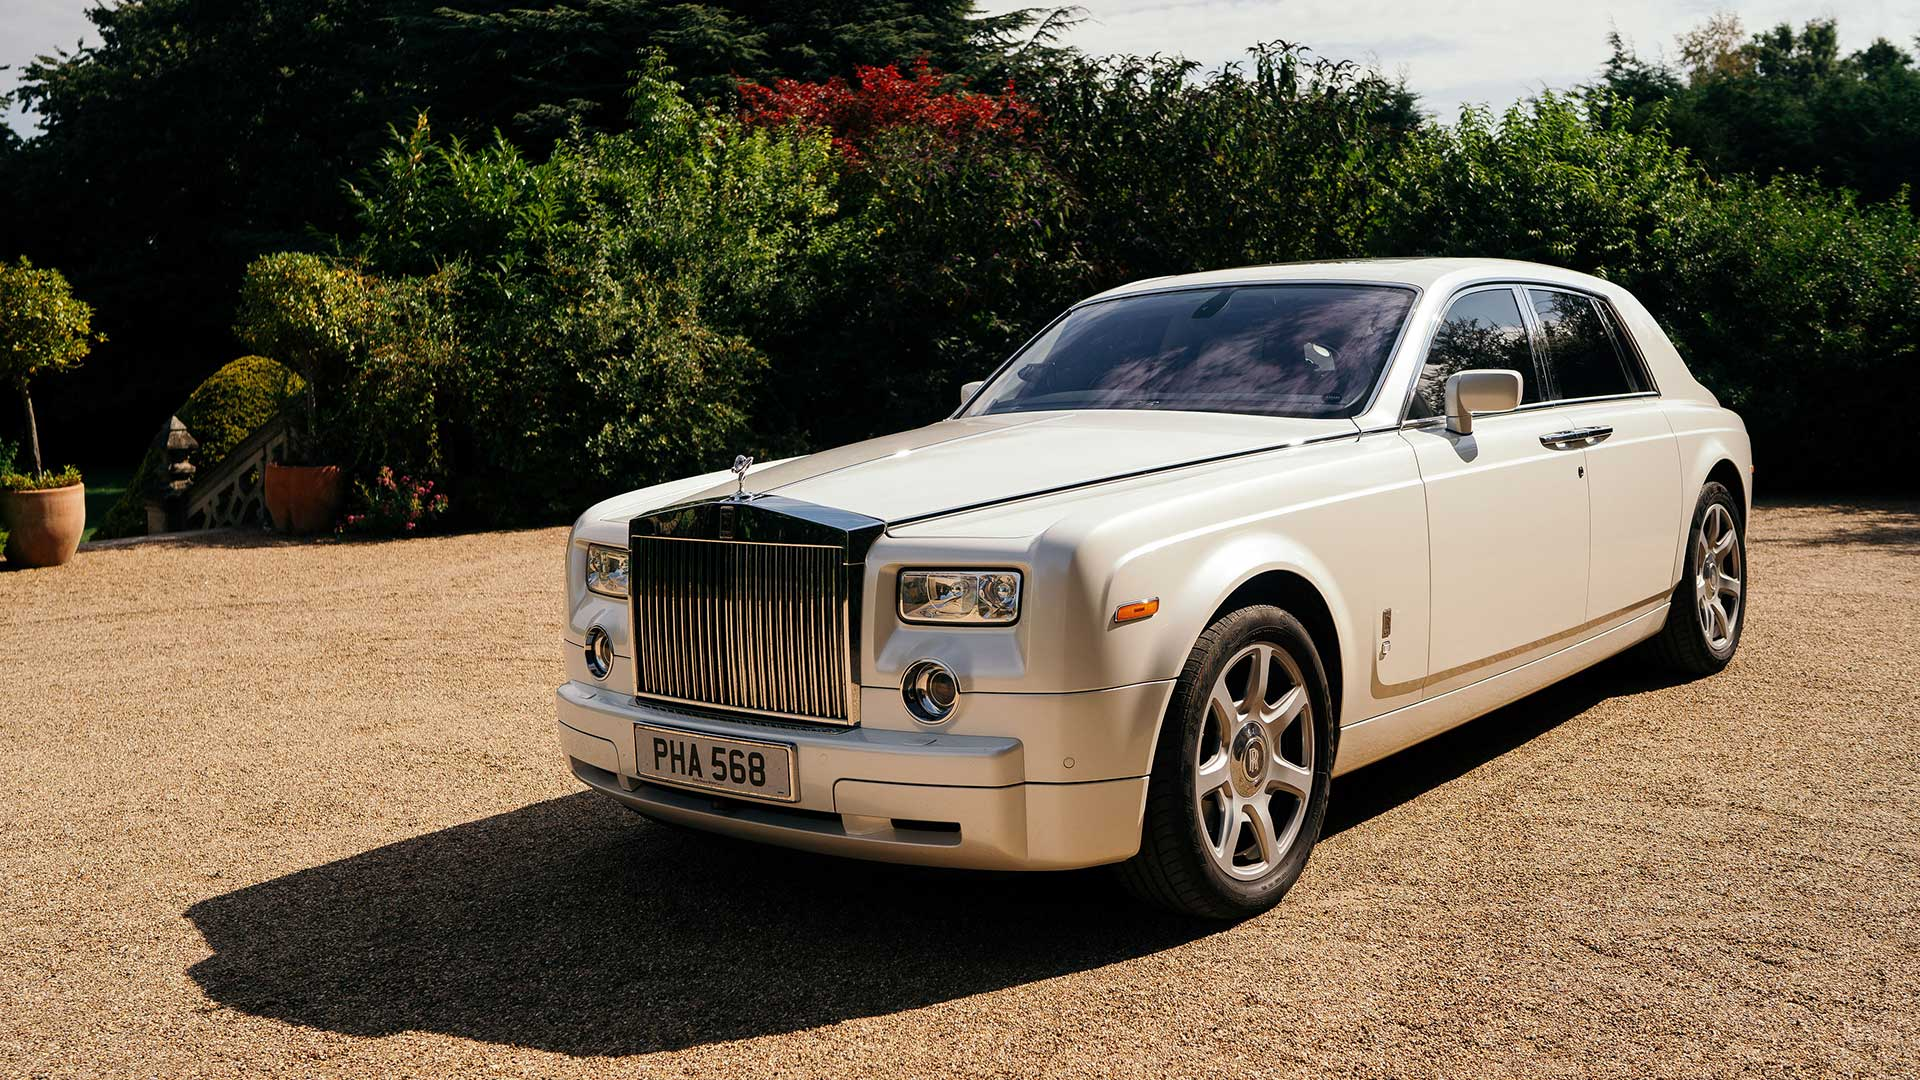 The Rolls-Royce wedding car in white